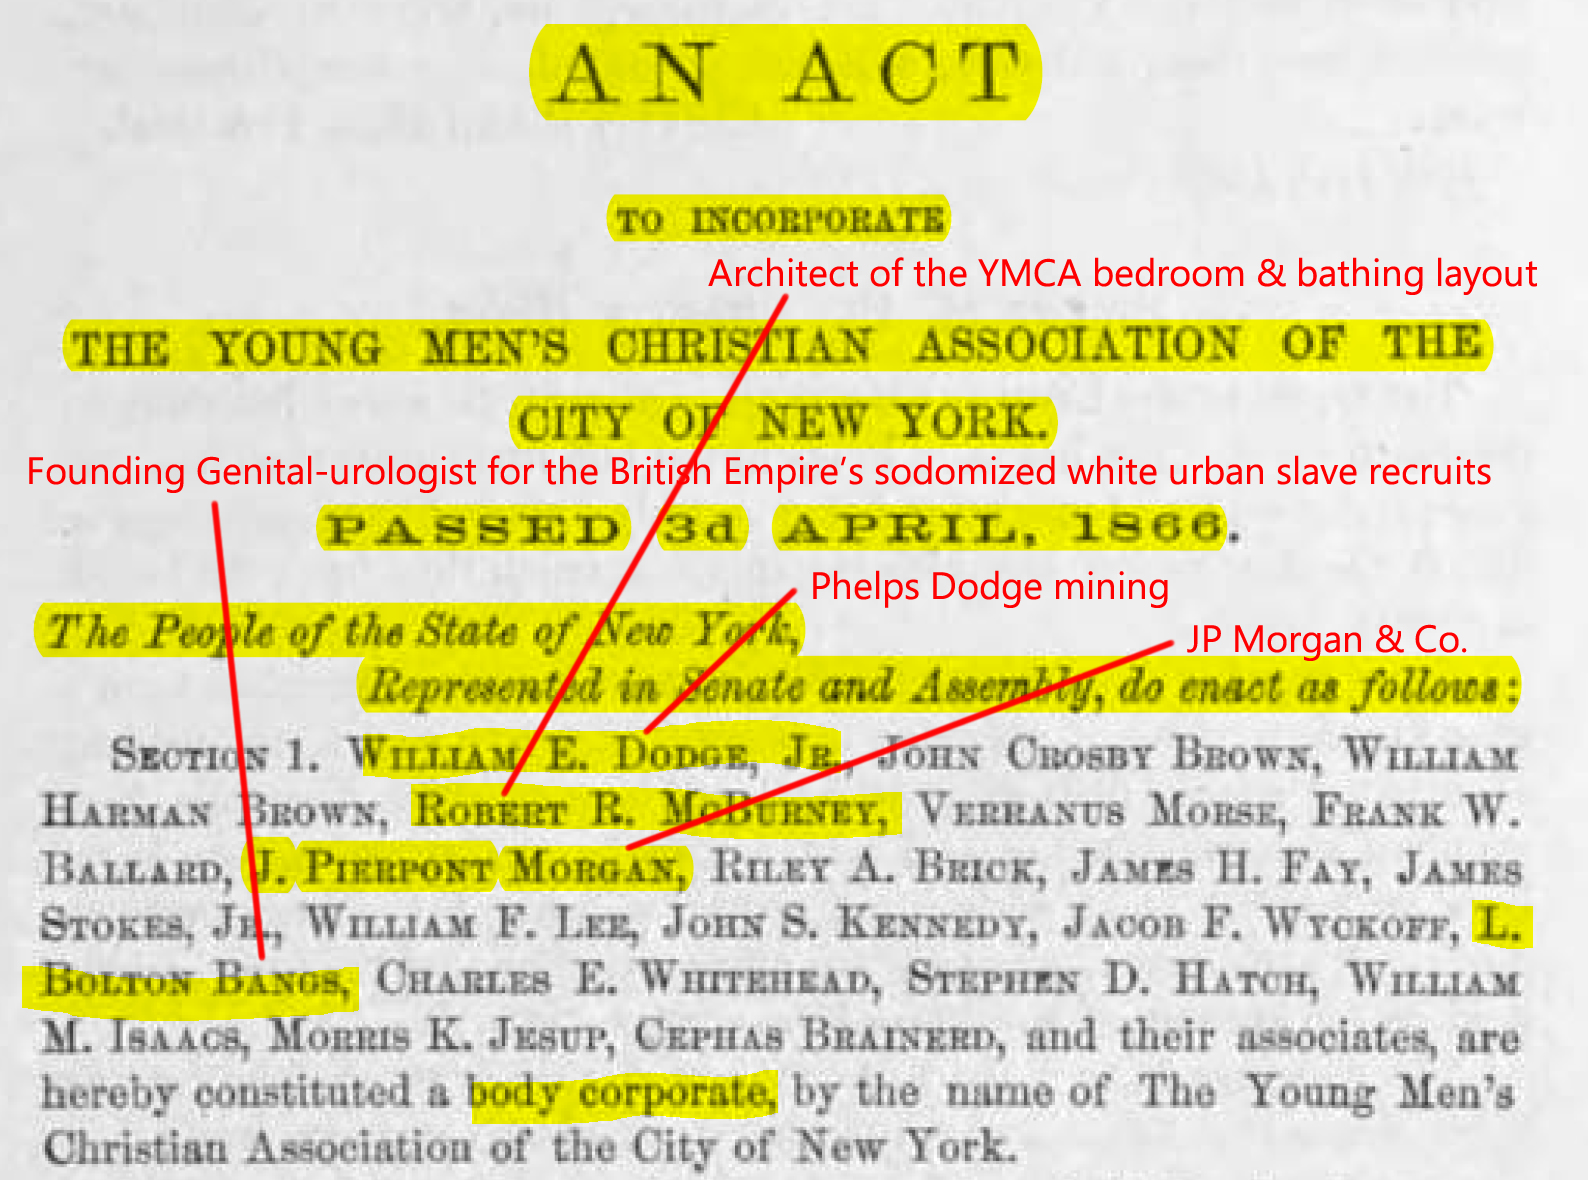 J. Pierpont Morgan (J.P. Morgan), director, treasurer; Elihu Root, committee chairman. (May 15, 1865). YMCA of New York 13th (partial) and 14th (full) Annual Reports, Act of Incorporation, PDF p. 59. University of Minnesota Libraries, Kautz Family YMCA Archives. New York Young Men's Christian Association (YMCA).